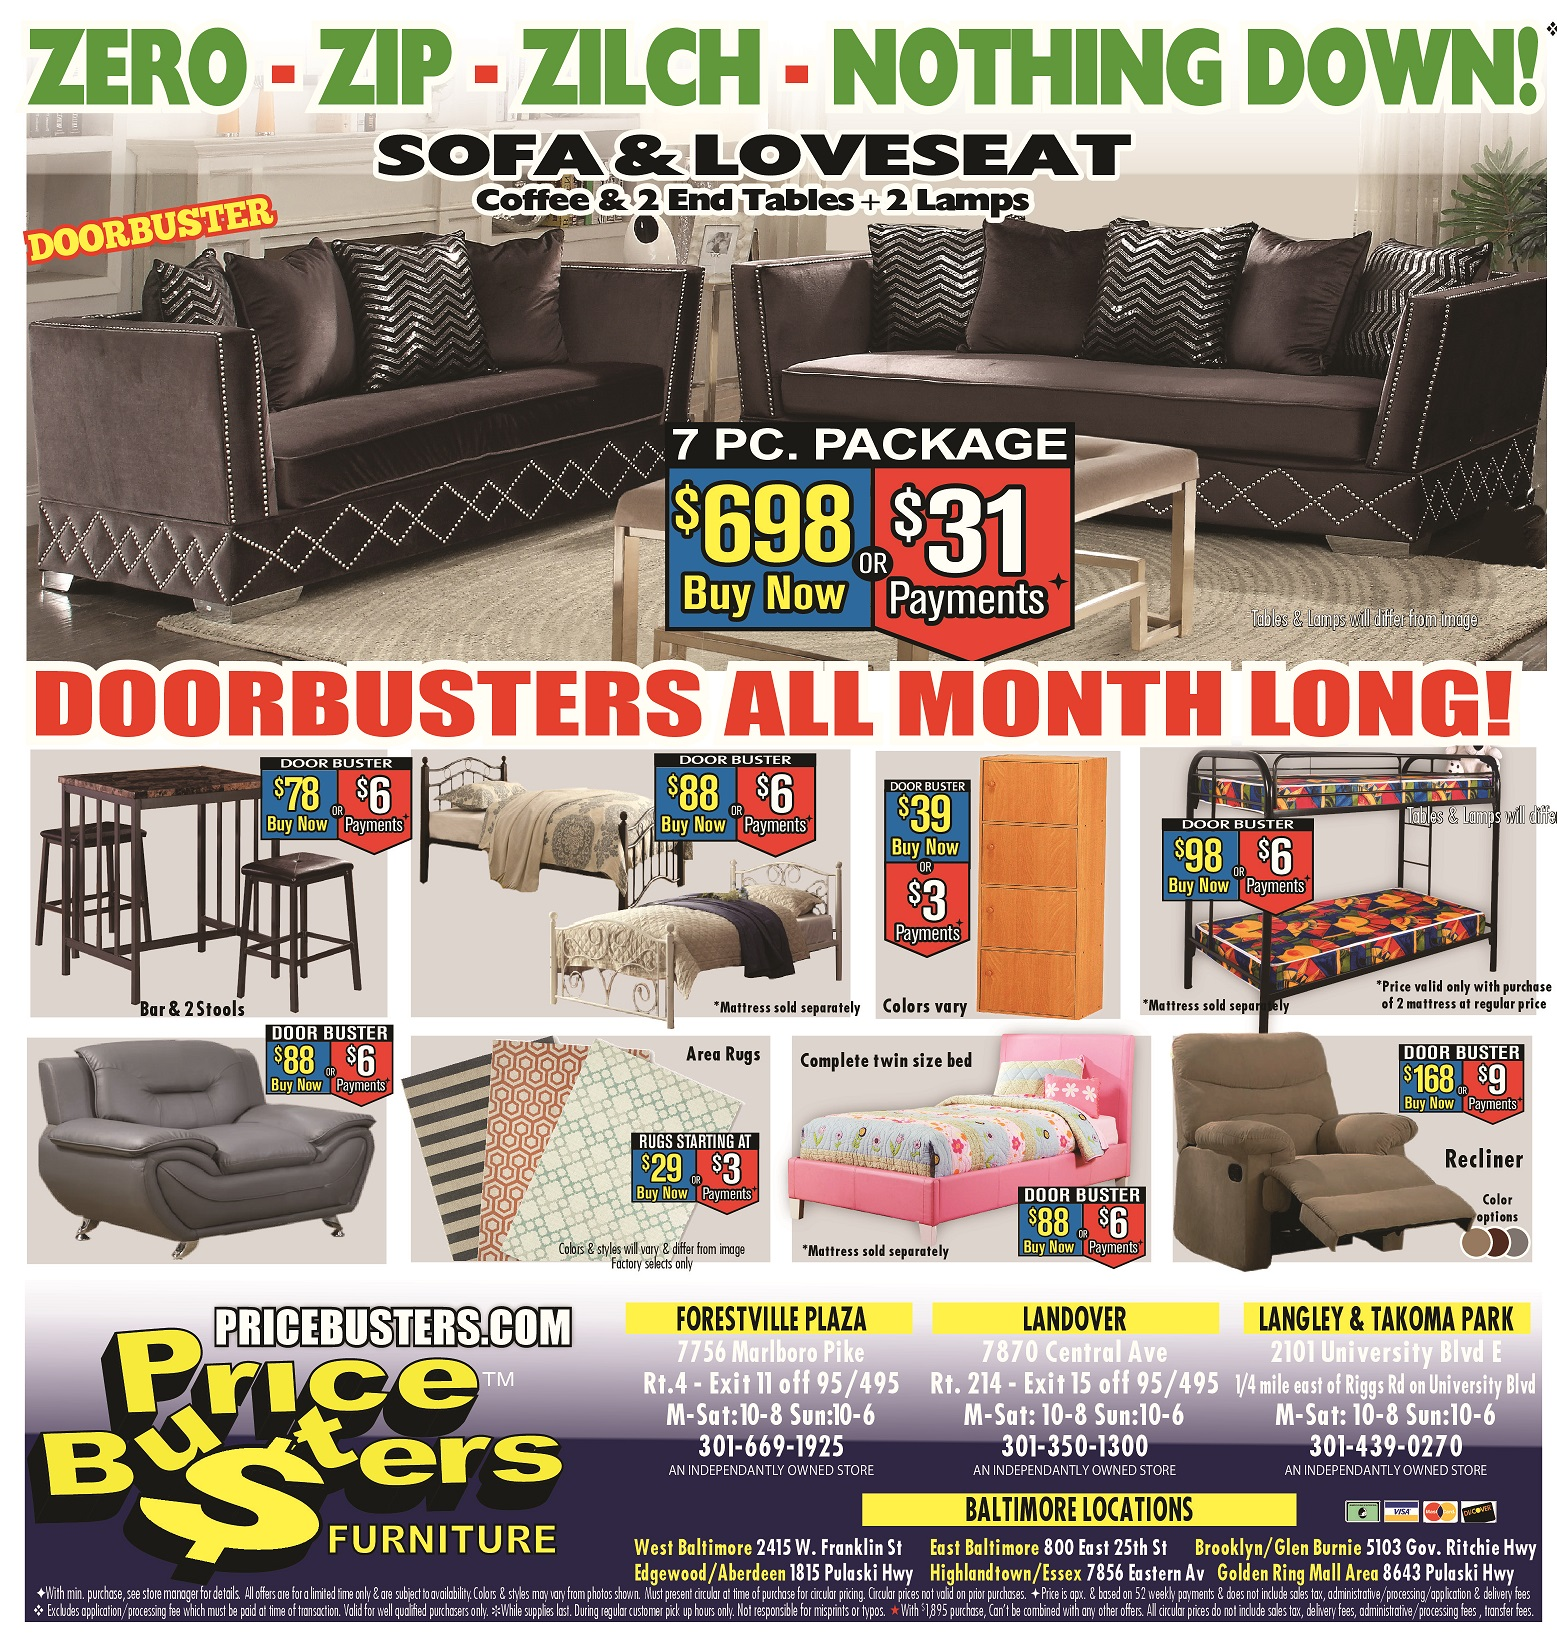 Price Busters Discount Furniture image 4